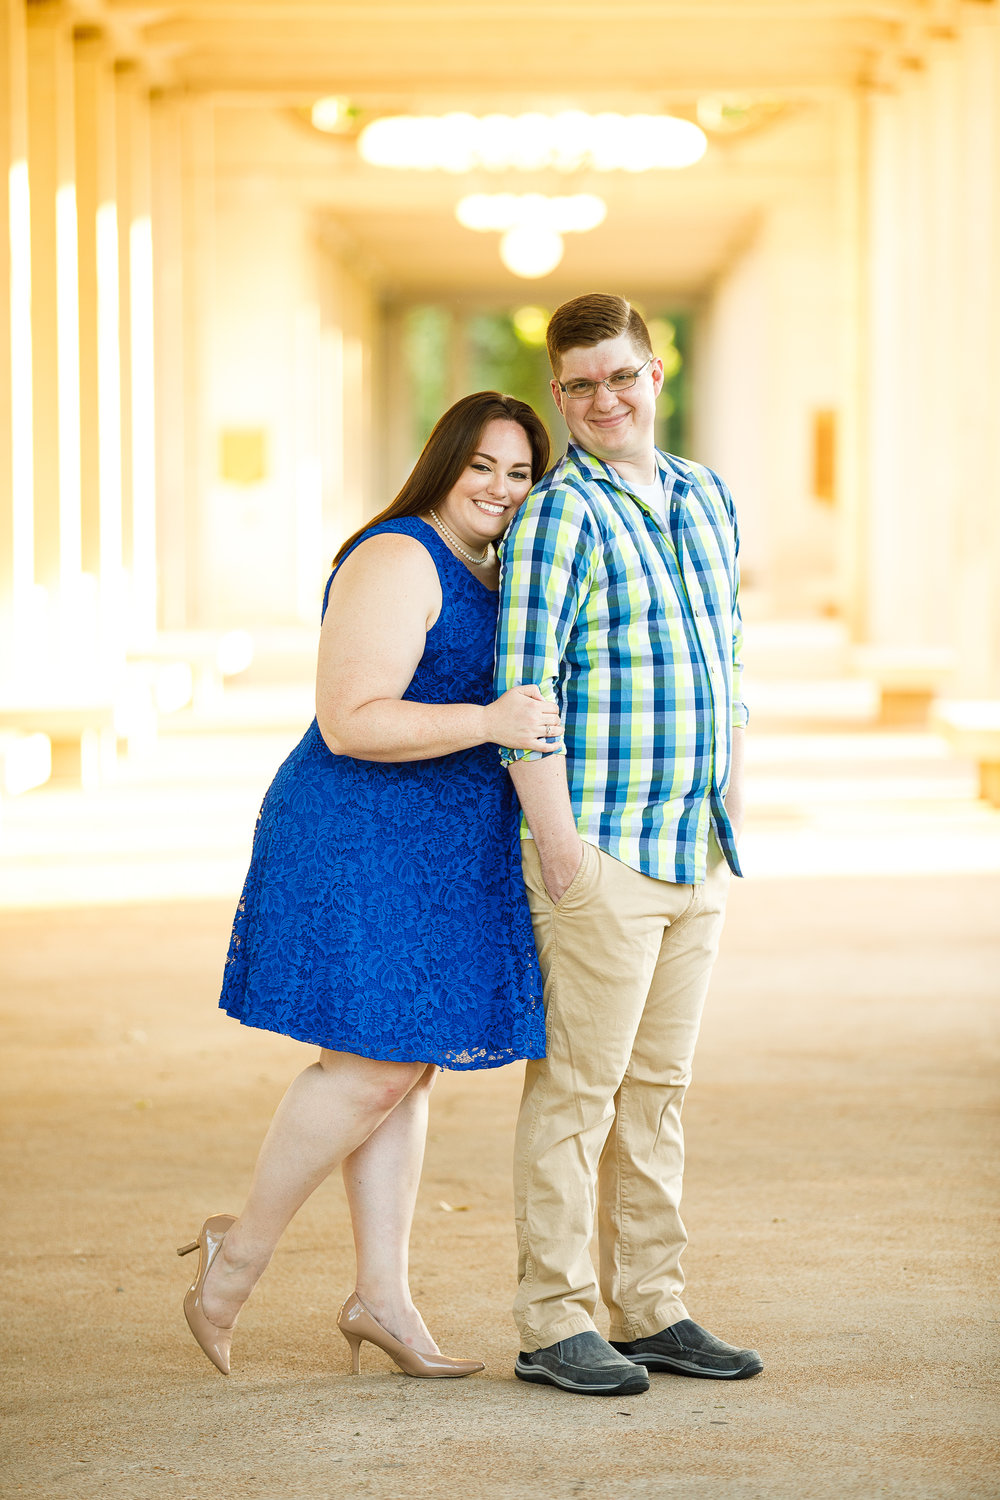 Busch Stadium and Forest Park Engagement Photos by St Louis Wedding Photographers and Videographers Oldani Photography 26.jpg